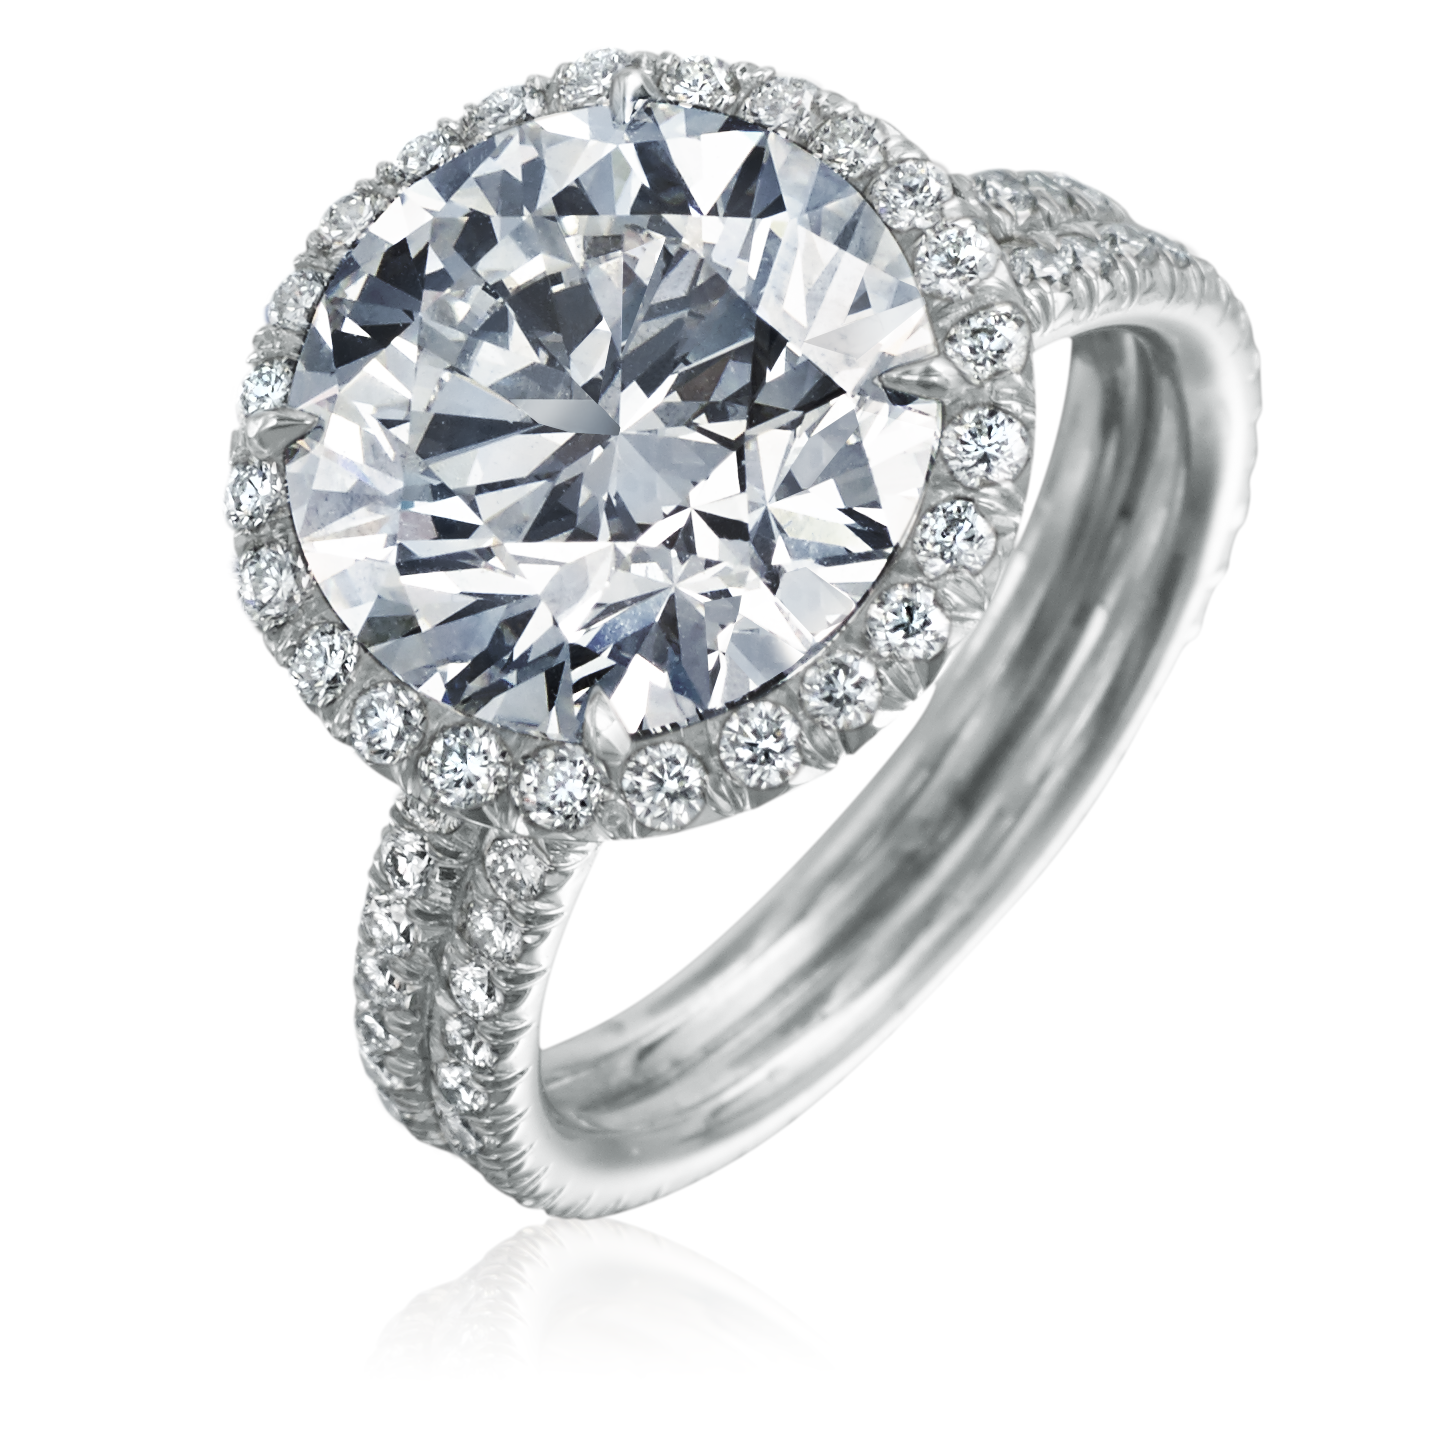 Round 5.45 Carat Ideal Cut Diamond Platinum Engagement Ring with Diamond Halo